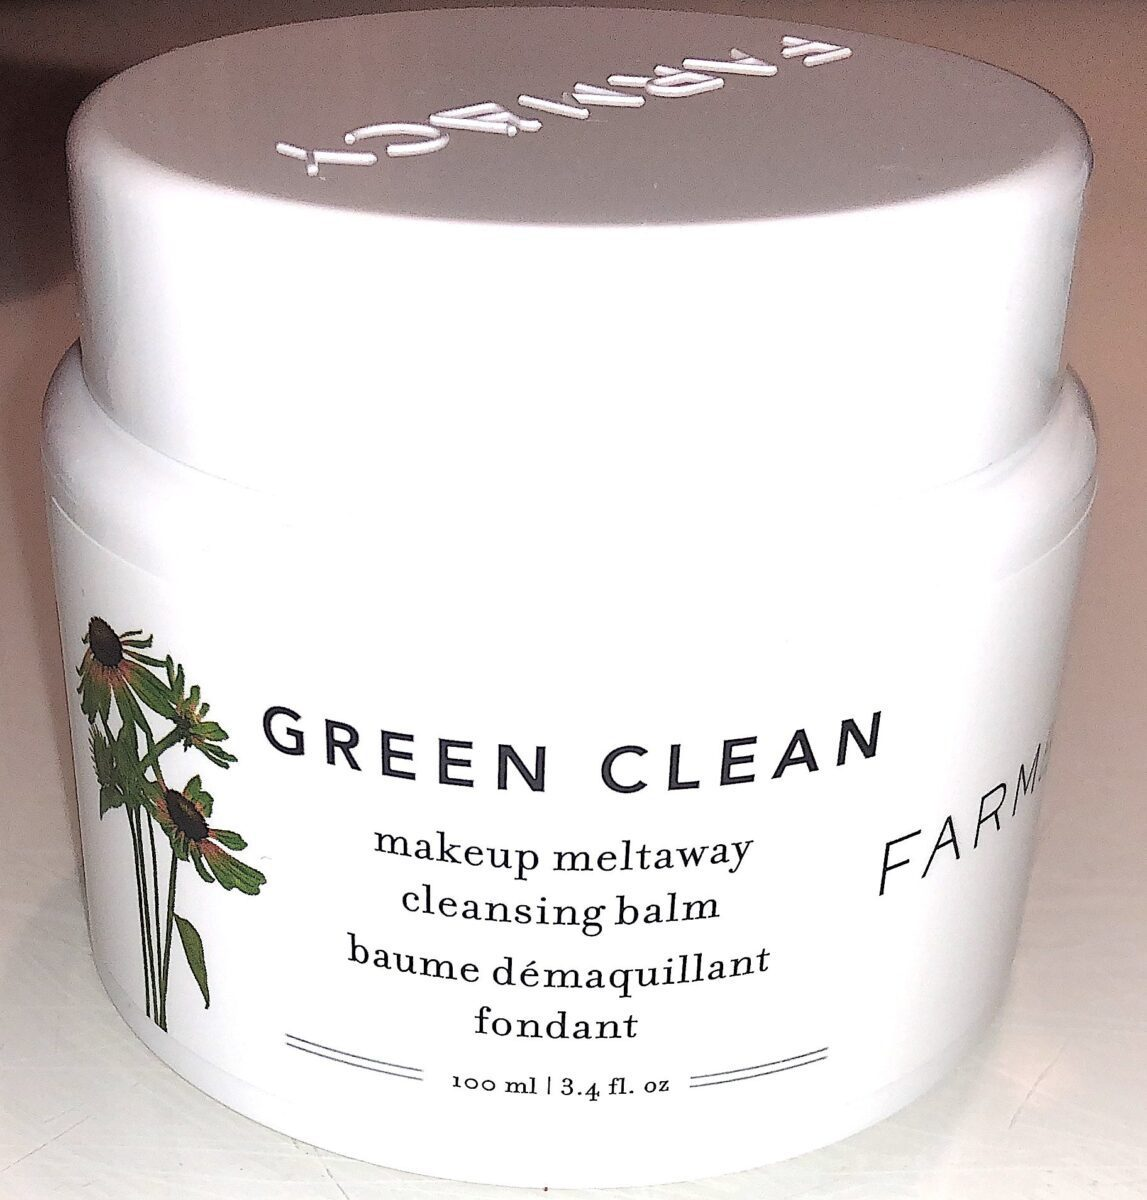 THE GREEN CLEAN MAKEUP MELTAWAY CLEANING BALM JAR